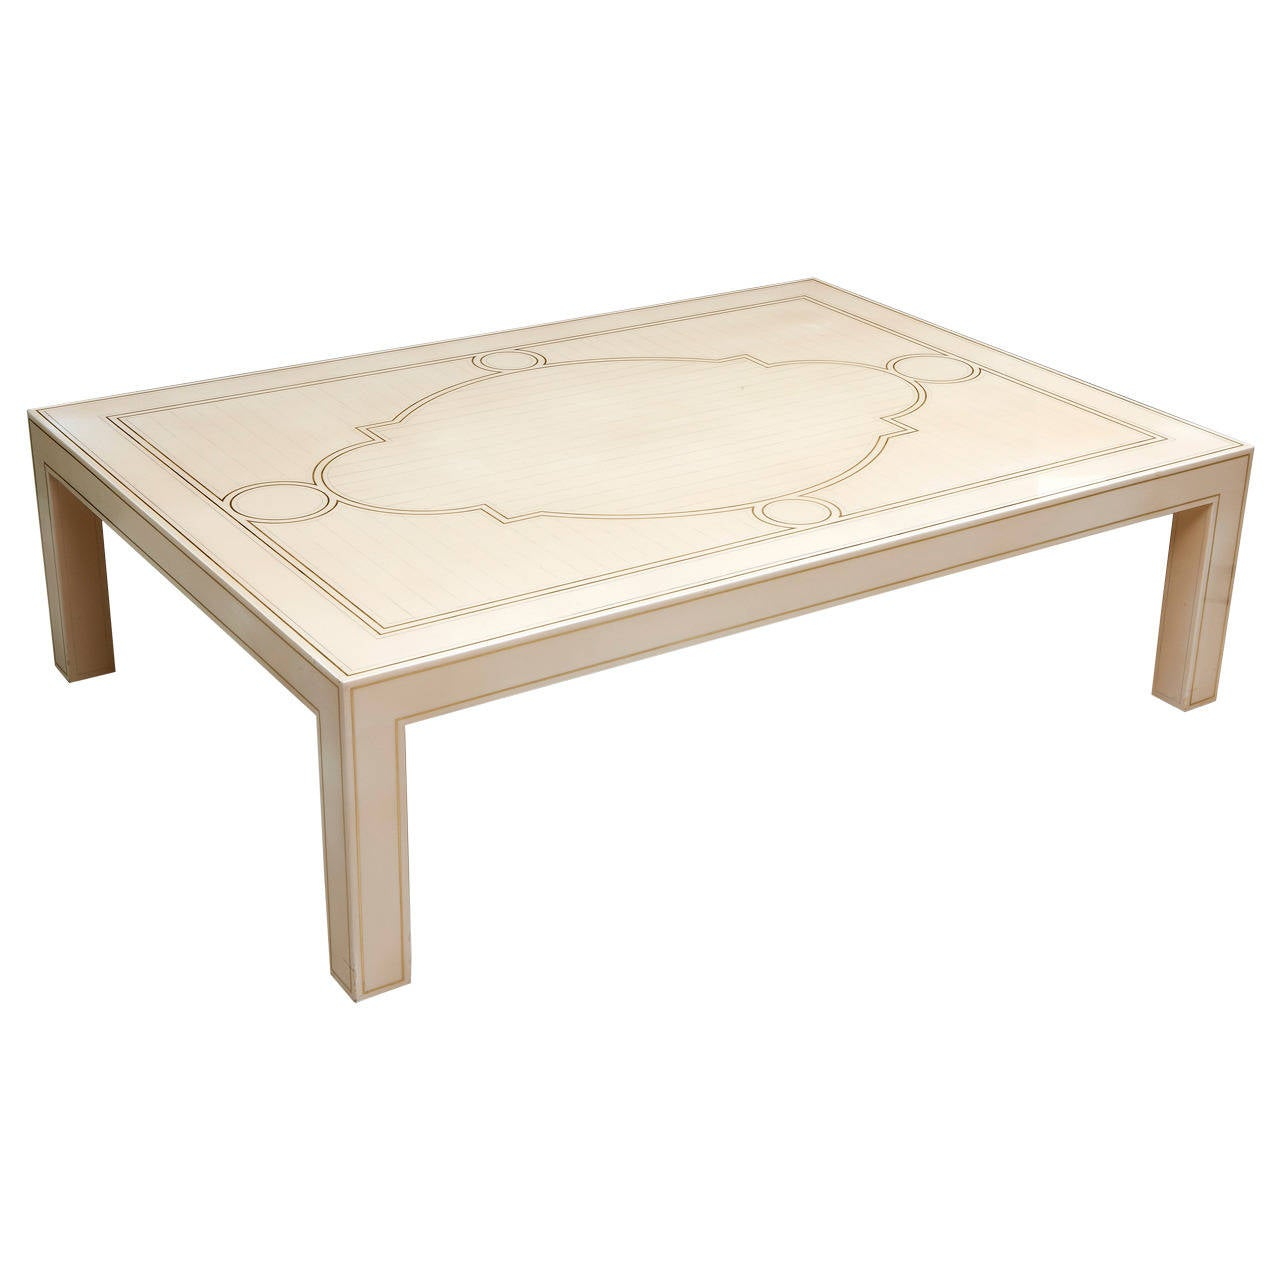 Ivory Lacquer With Metal Inlaid Table 1970s At 1stdibs